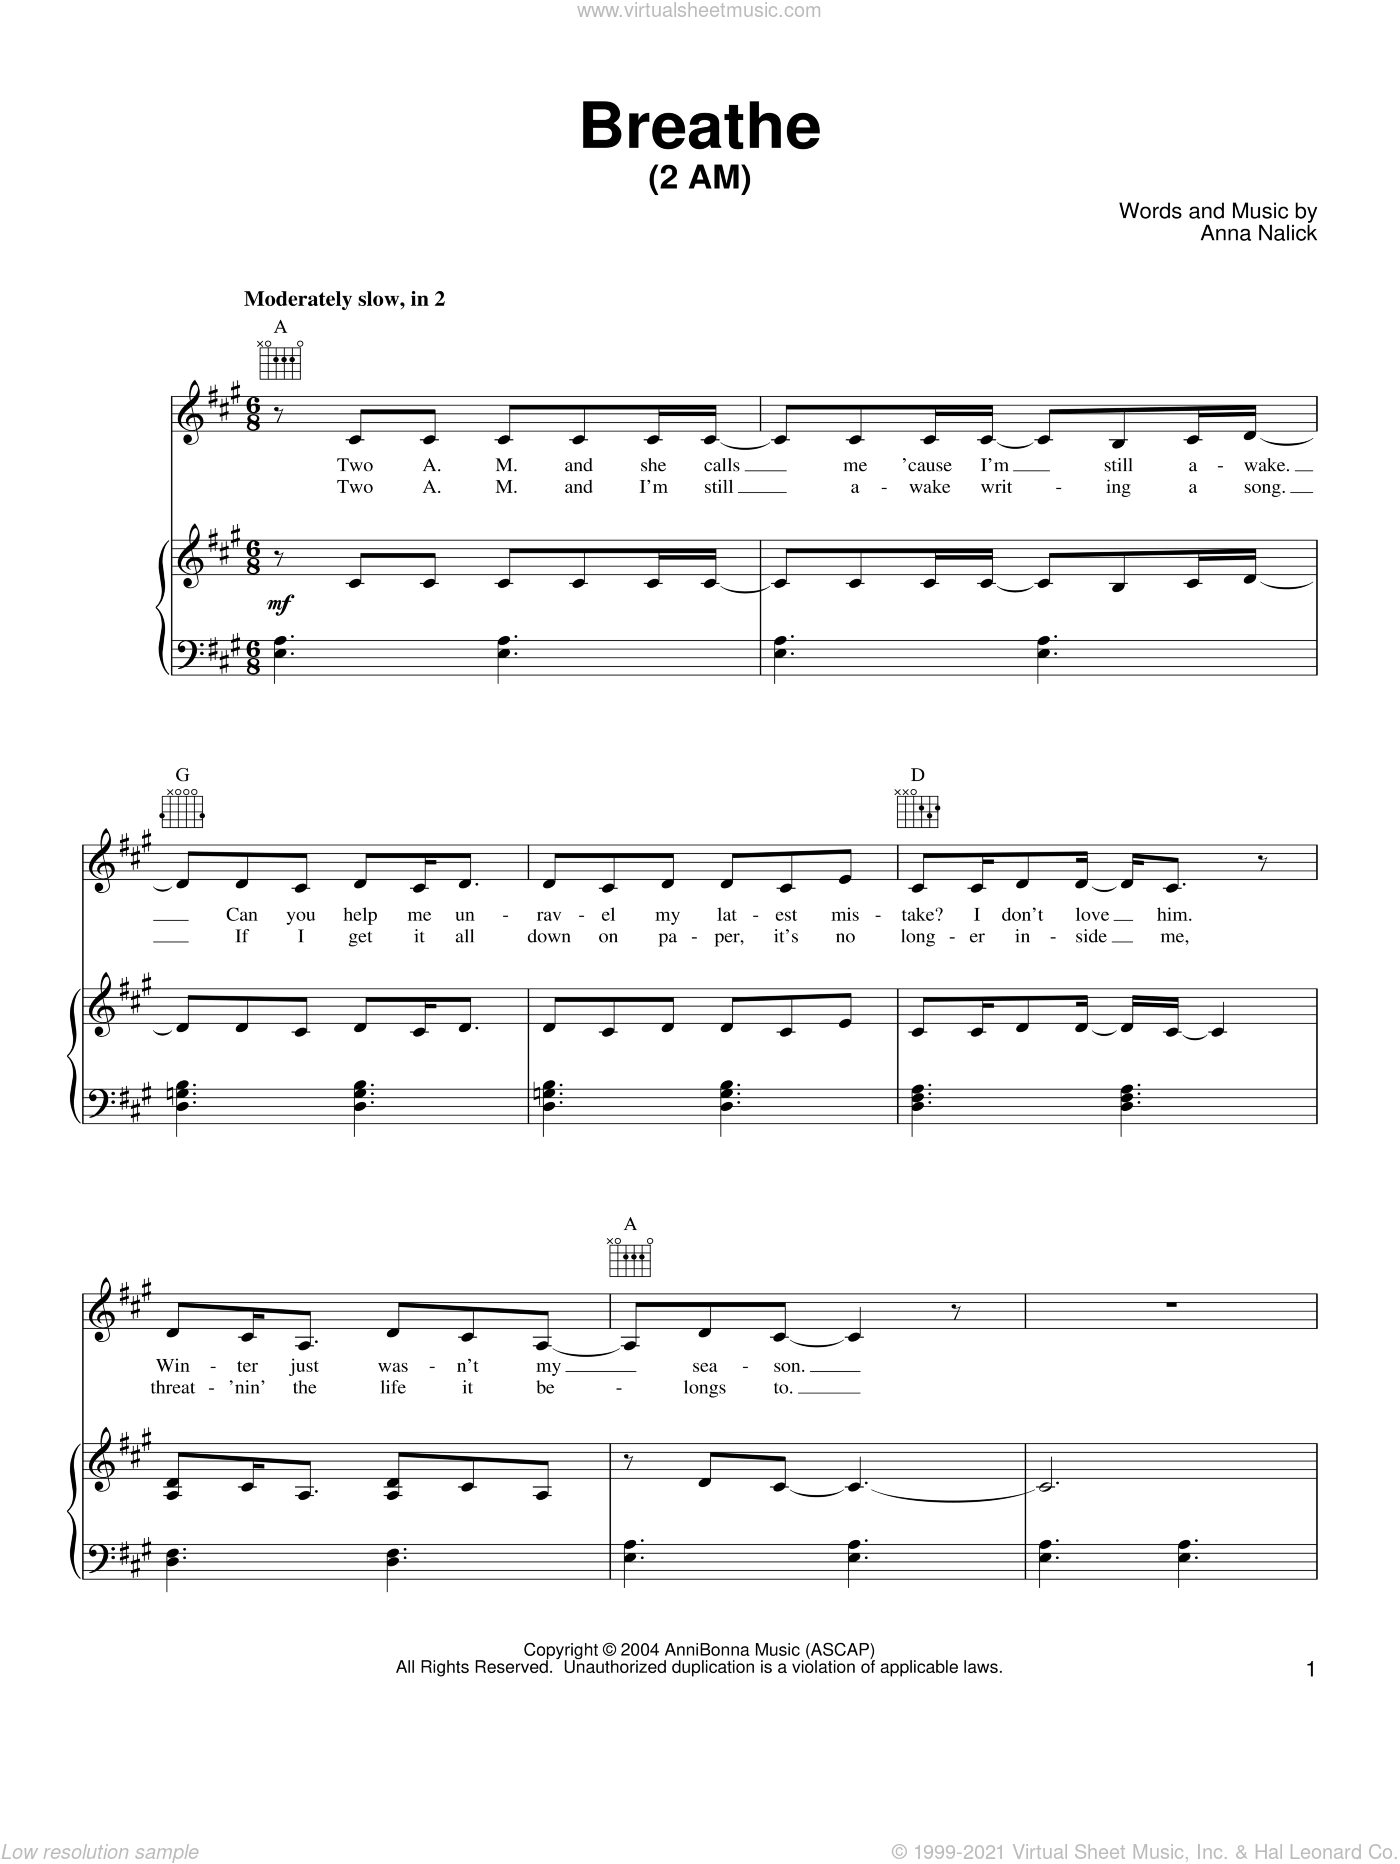 Breathe (2 AM) sheet music for voice, piano or guitar by Anna Nalick